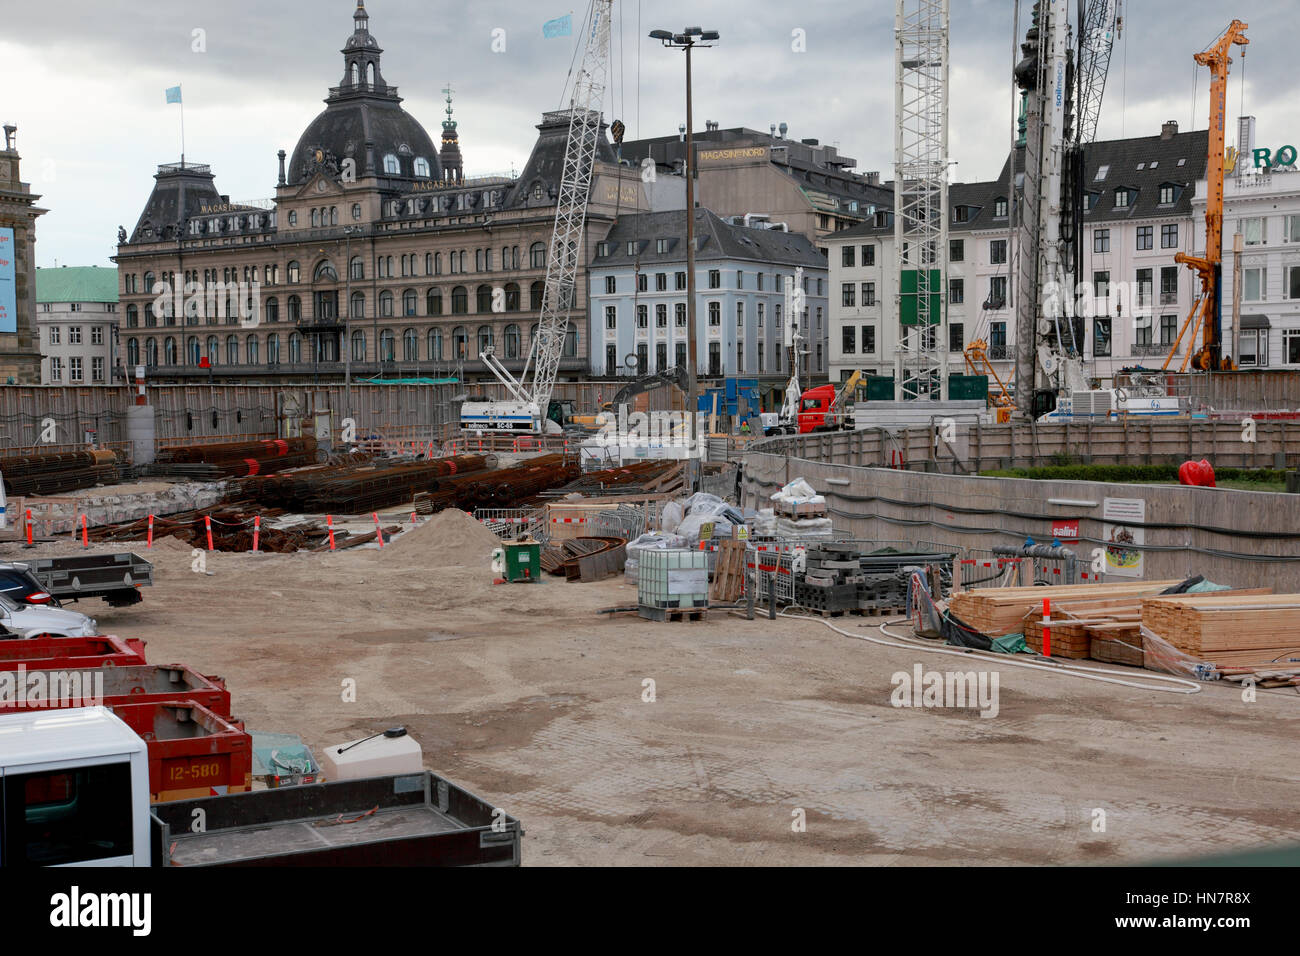 Work being carried on construction of the new City Circle Line metro in Copenhagen, Denmark - Stock Image